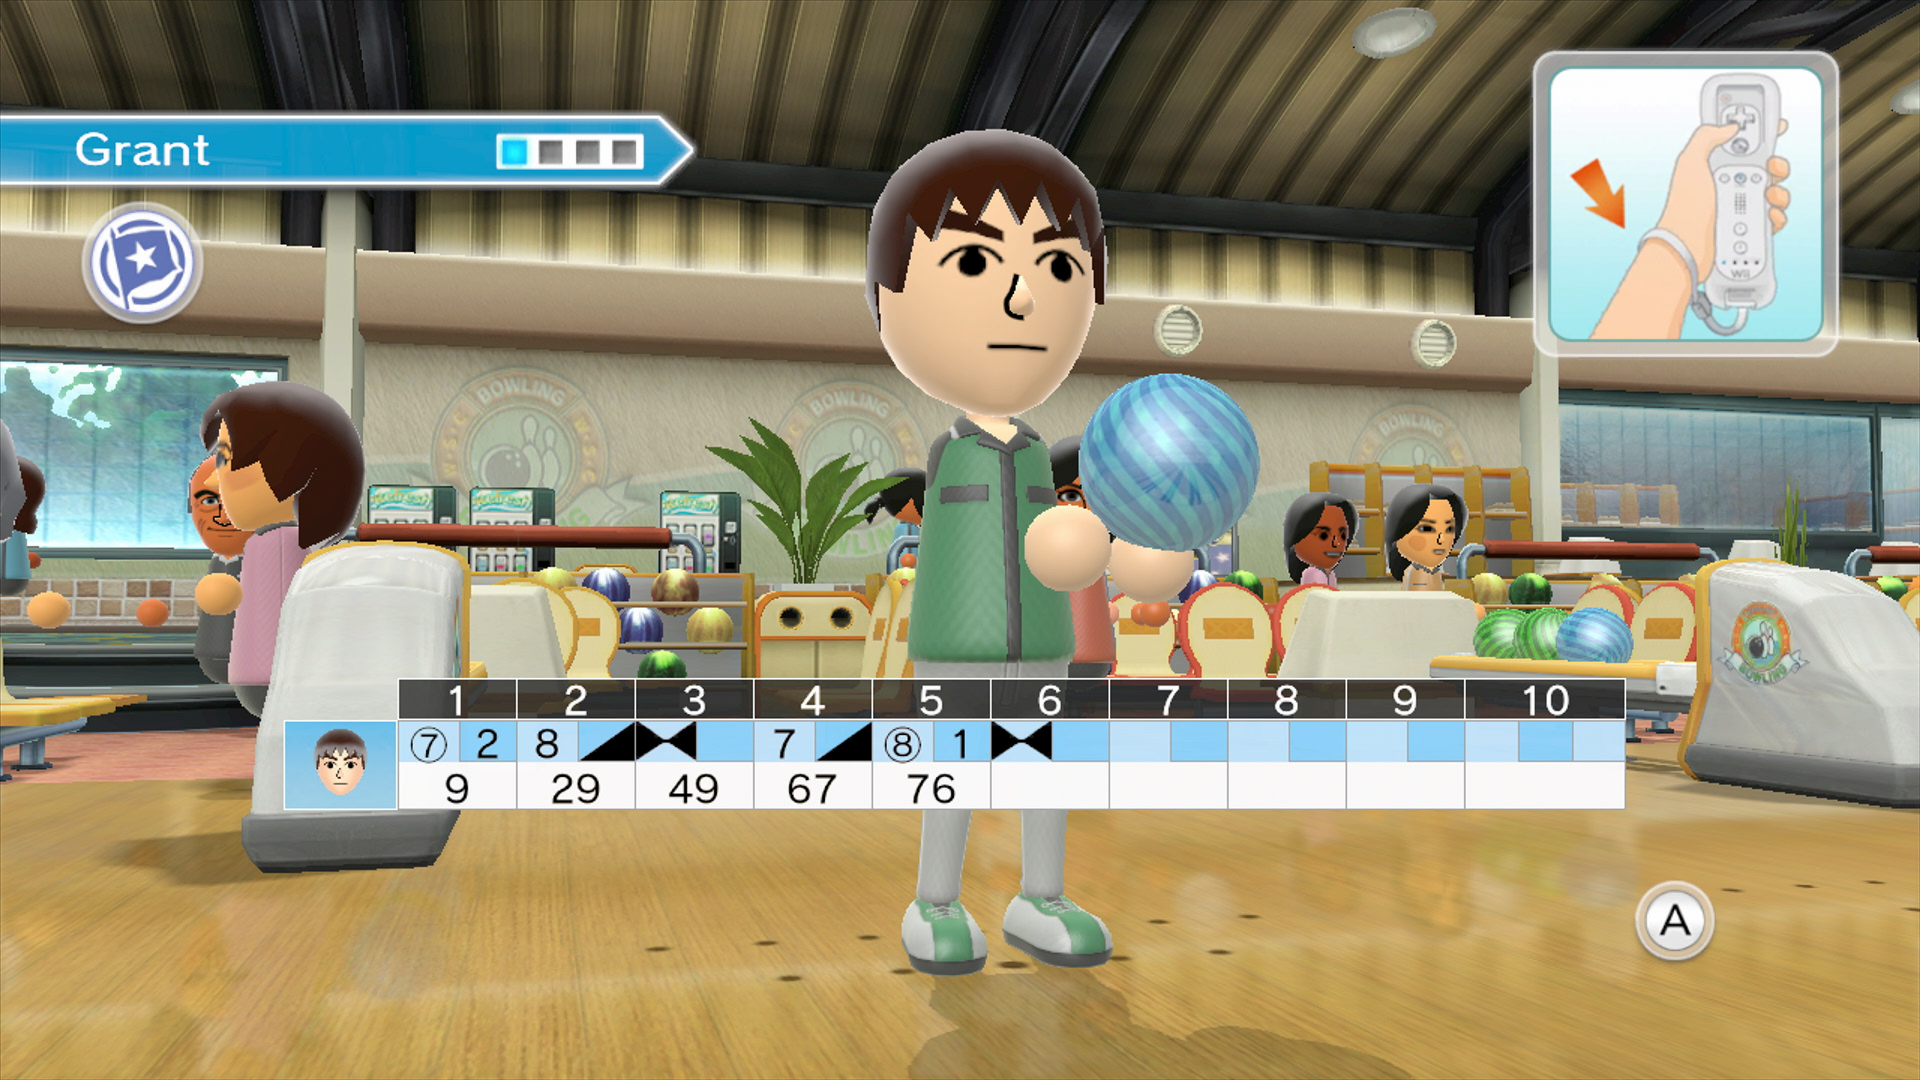 Bowling clipart wii bowling. Sports club review nintendo